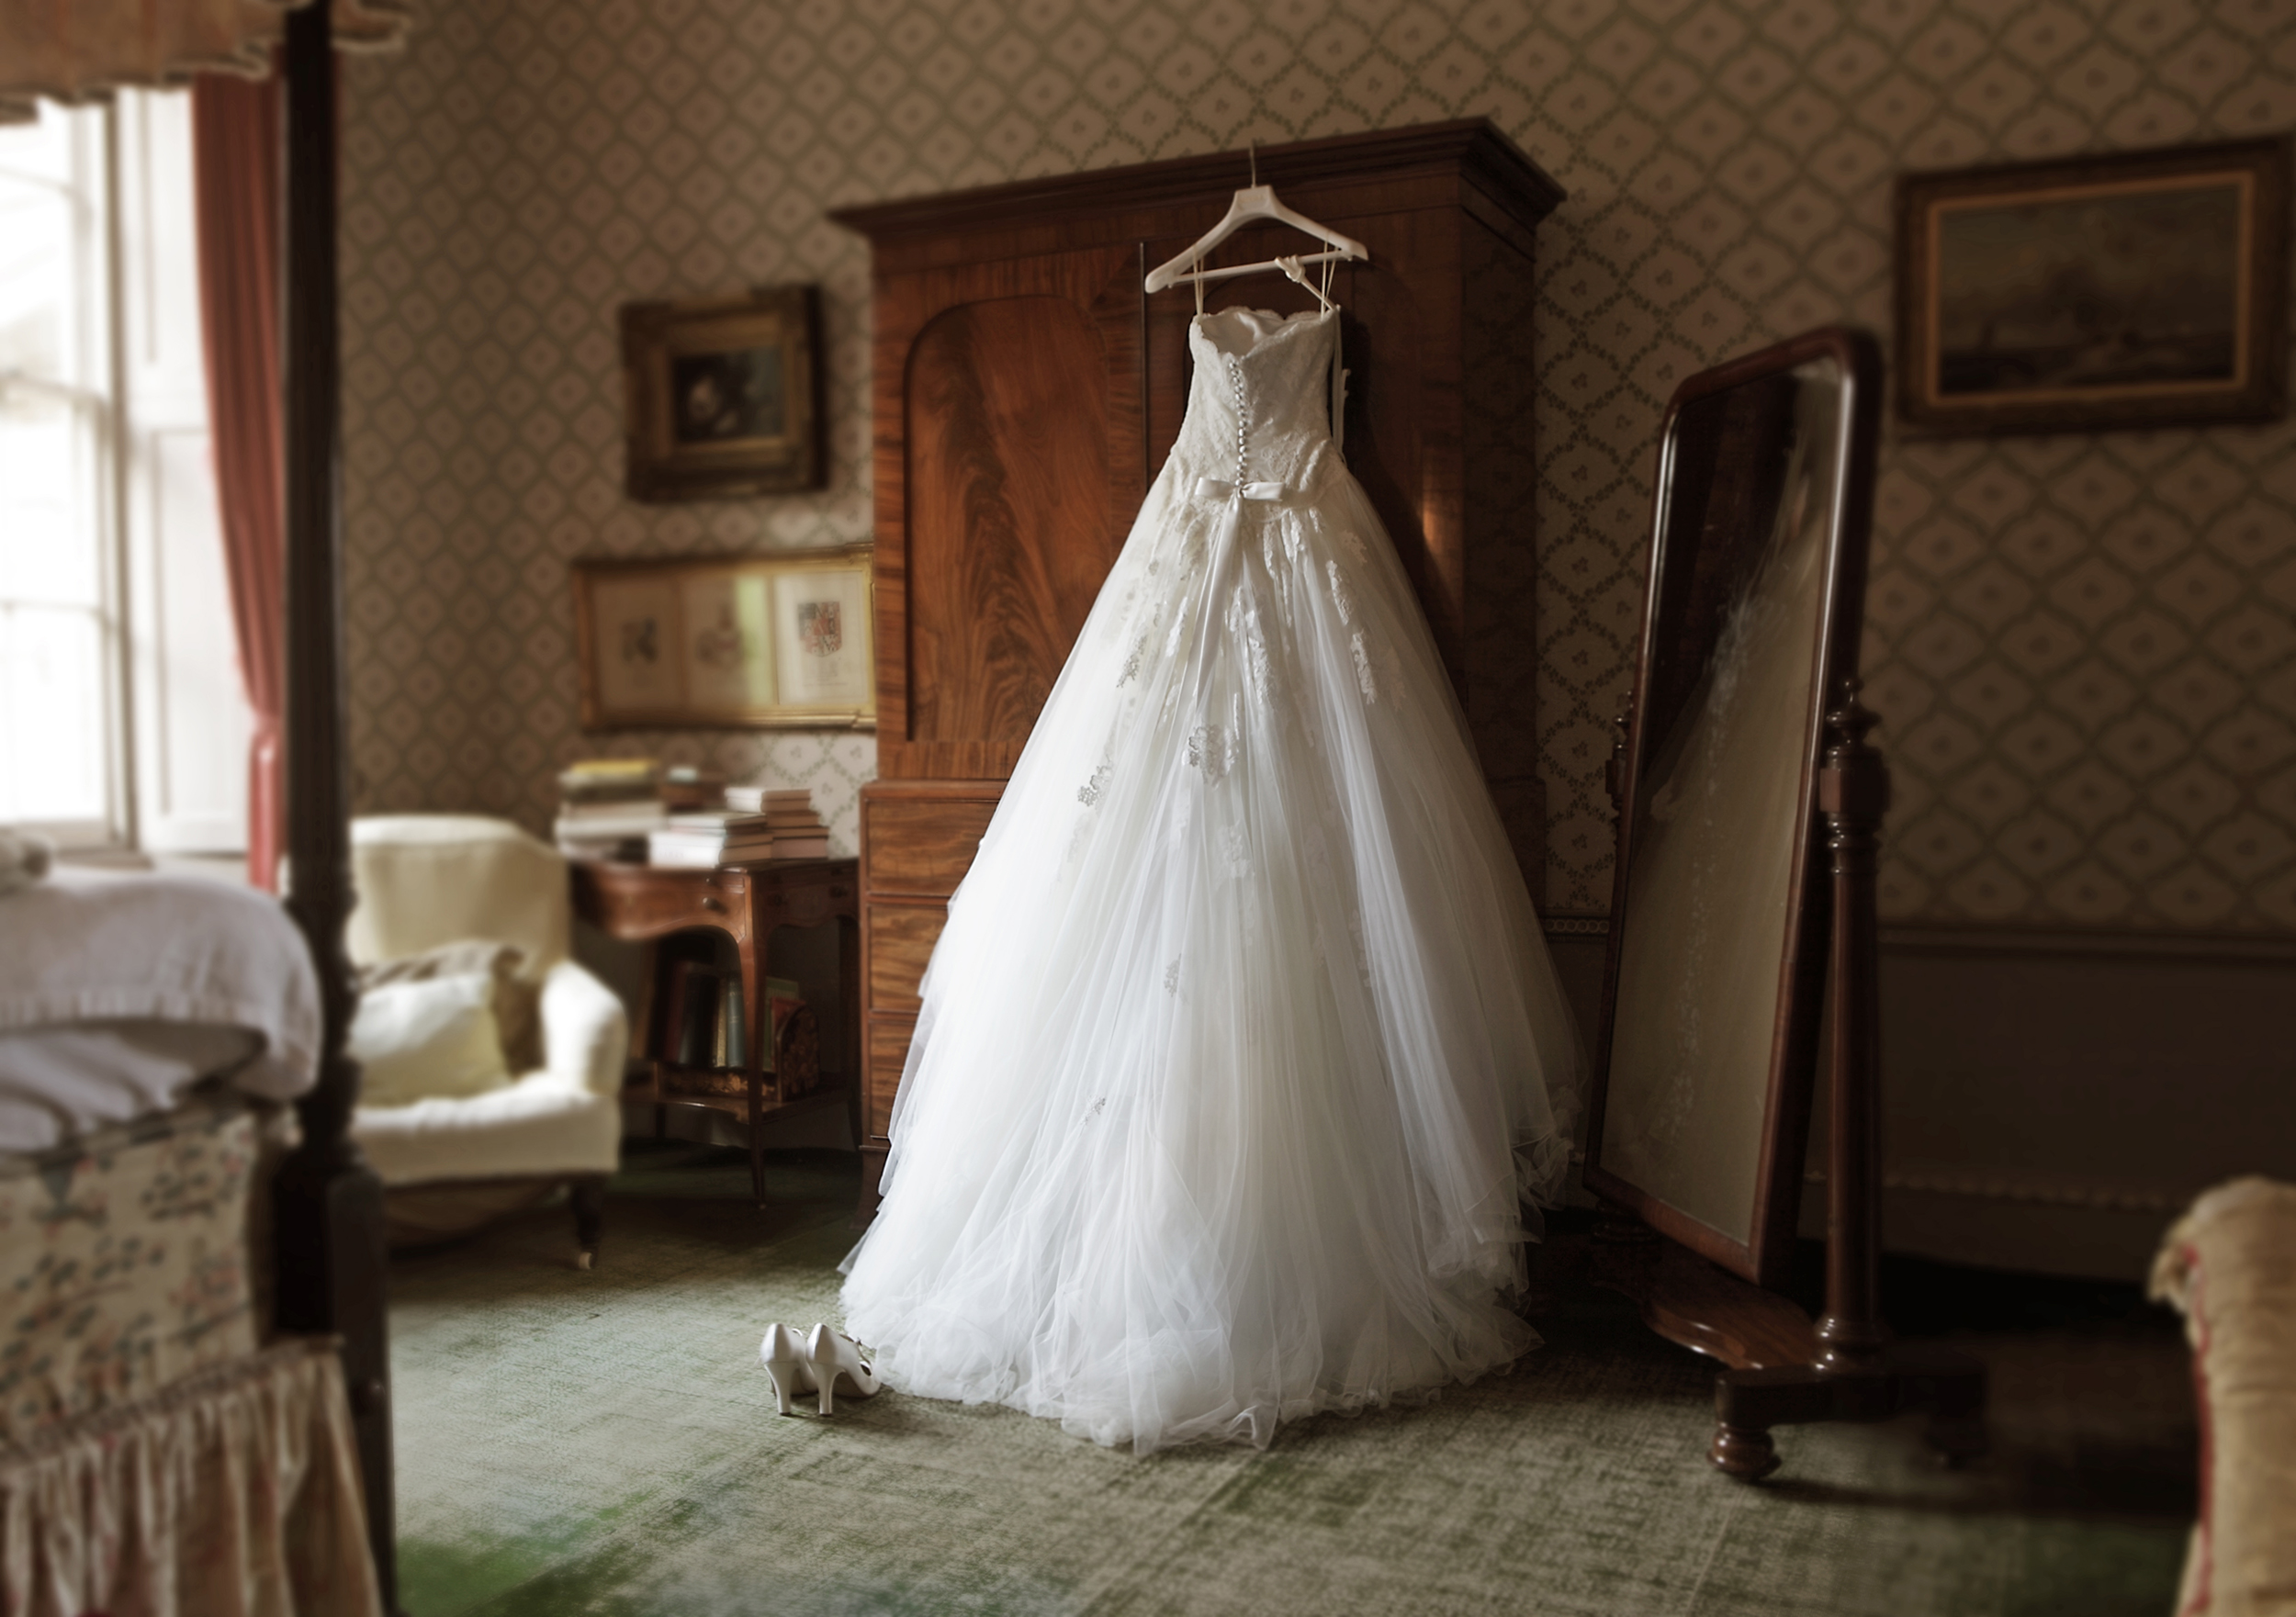 Coronavirus May Delay Wedding Dresses But Don T Panic Industry Experts Say,Red Fancy Dress For Wedding